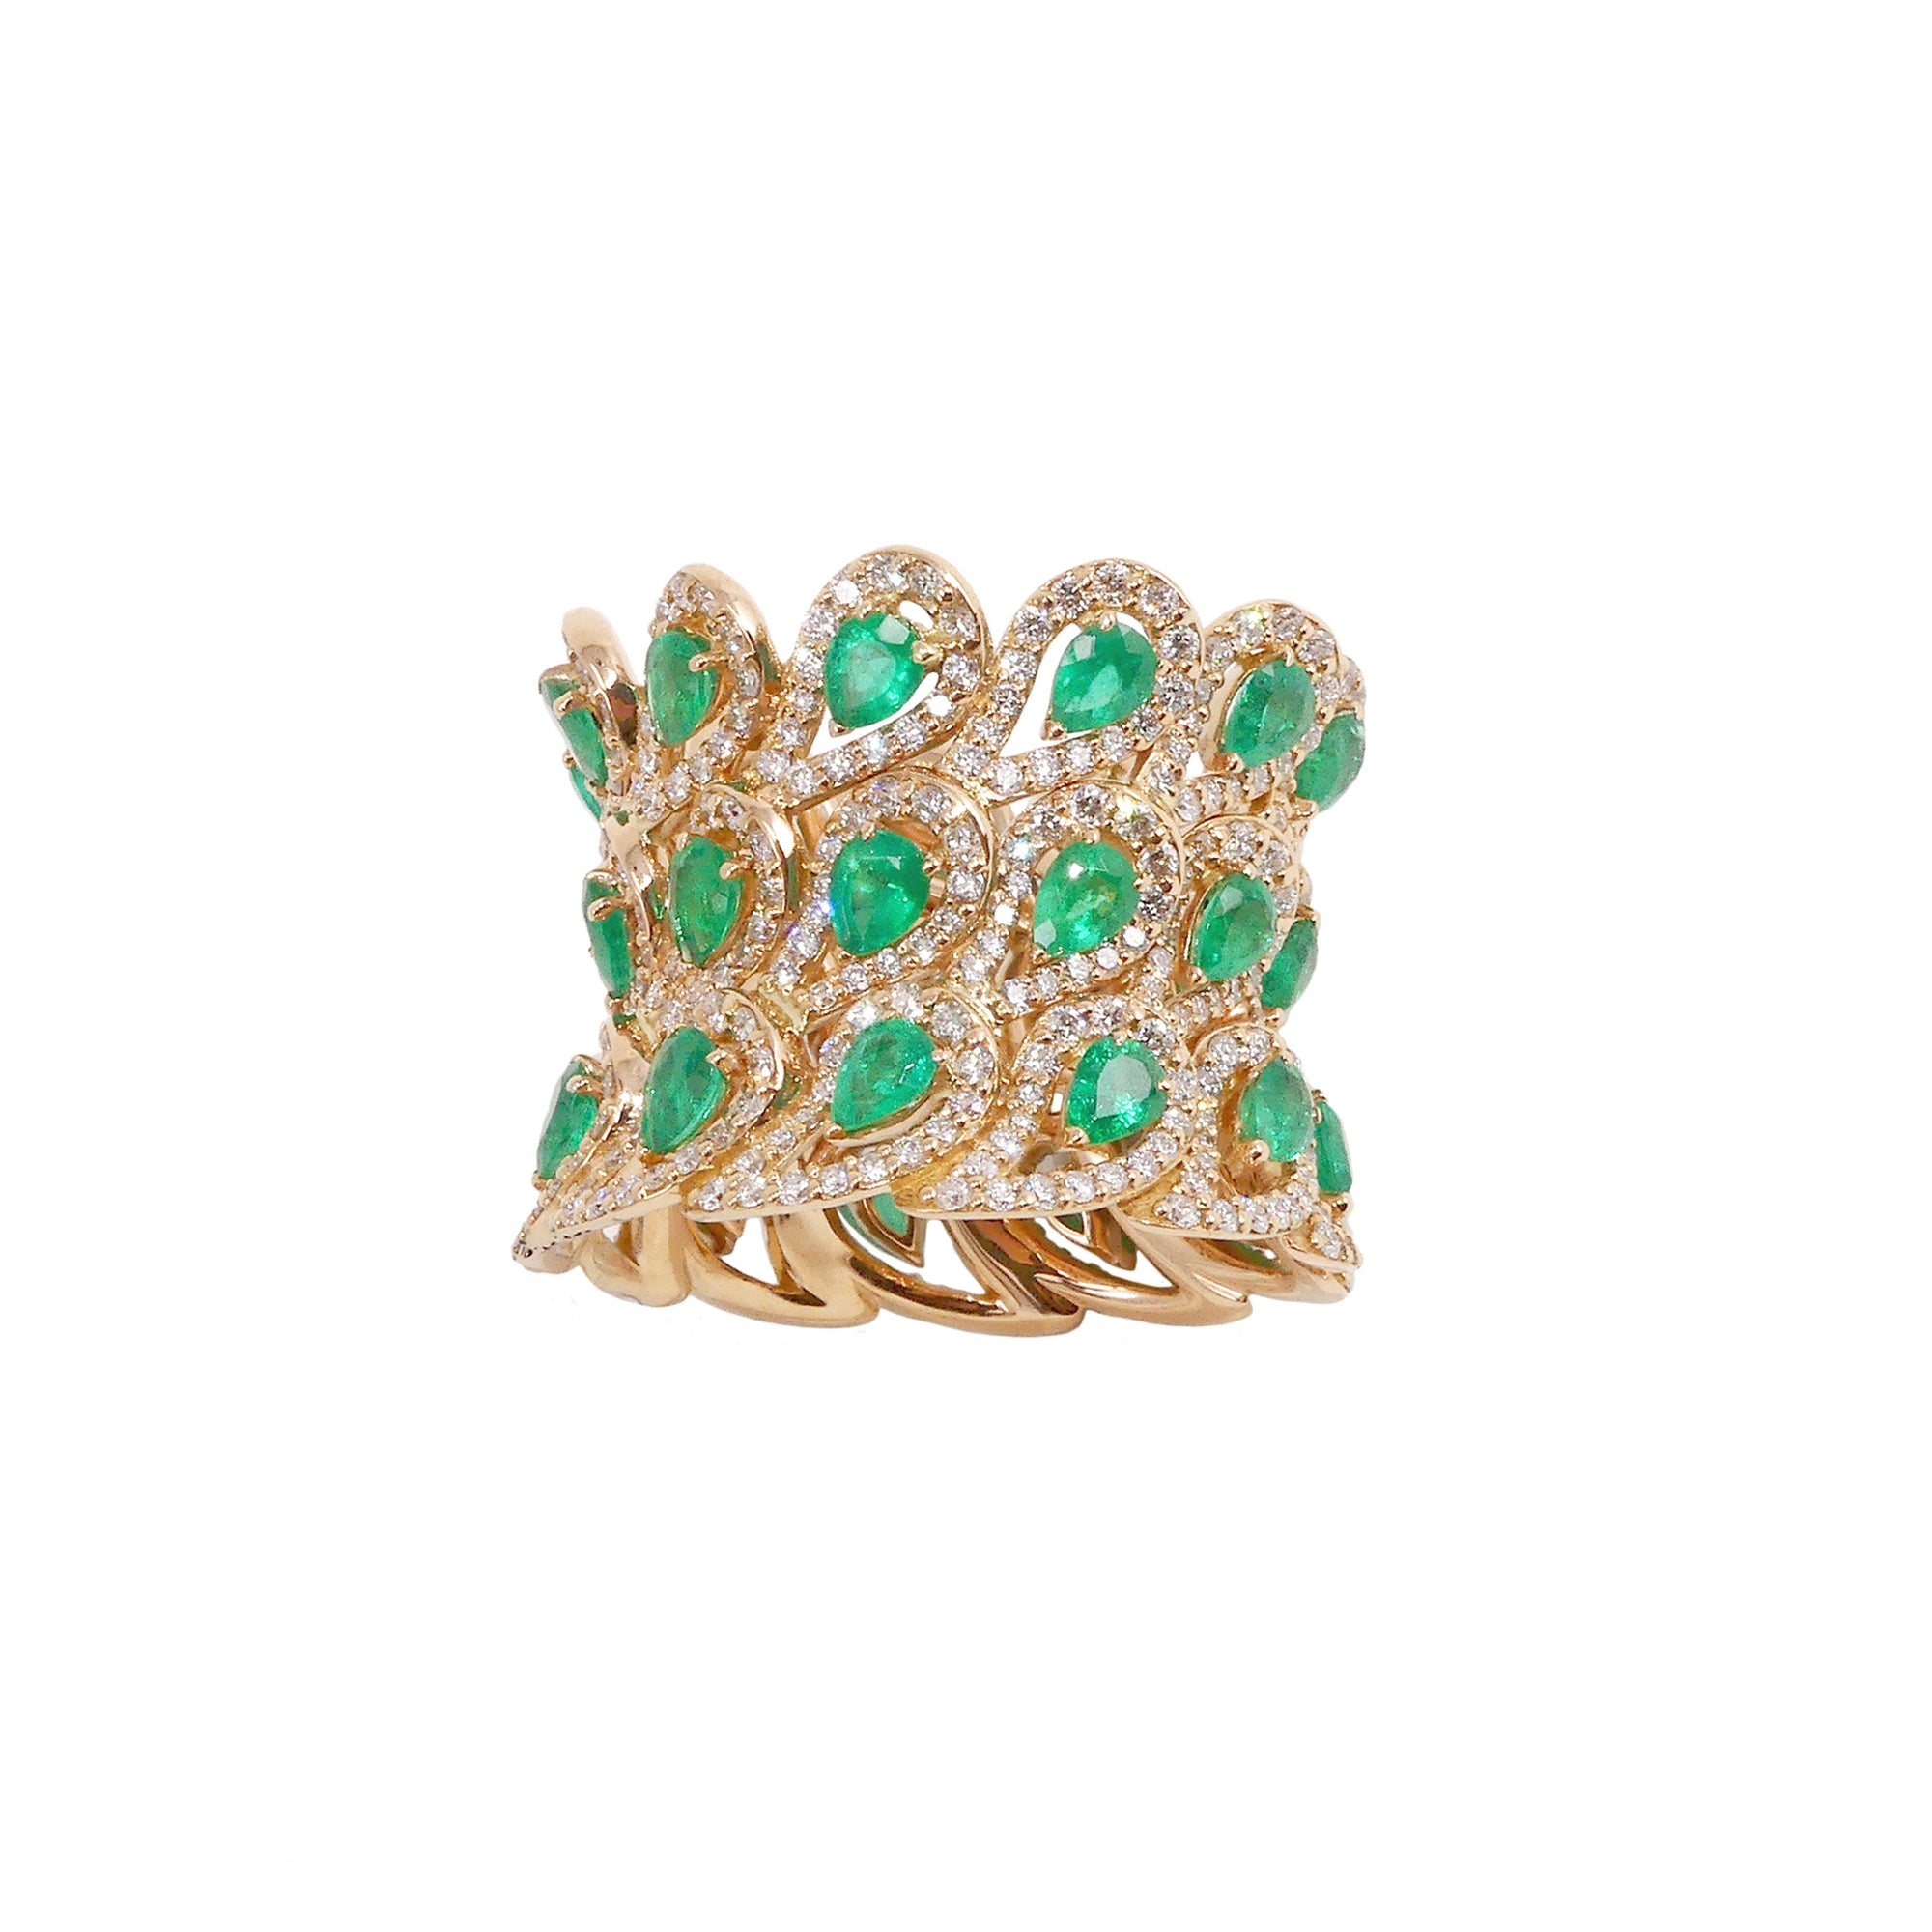 Era Rose Gold Ring With Emeralds and Diamonds